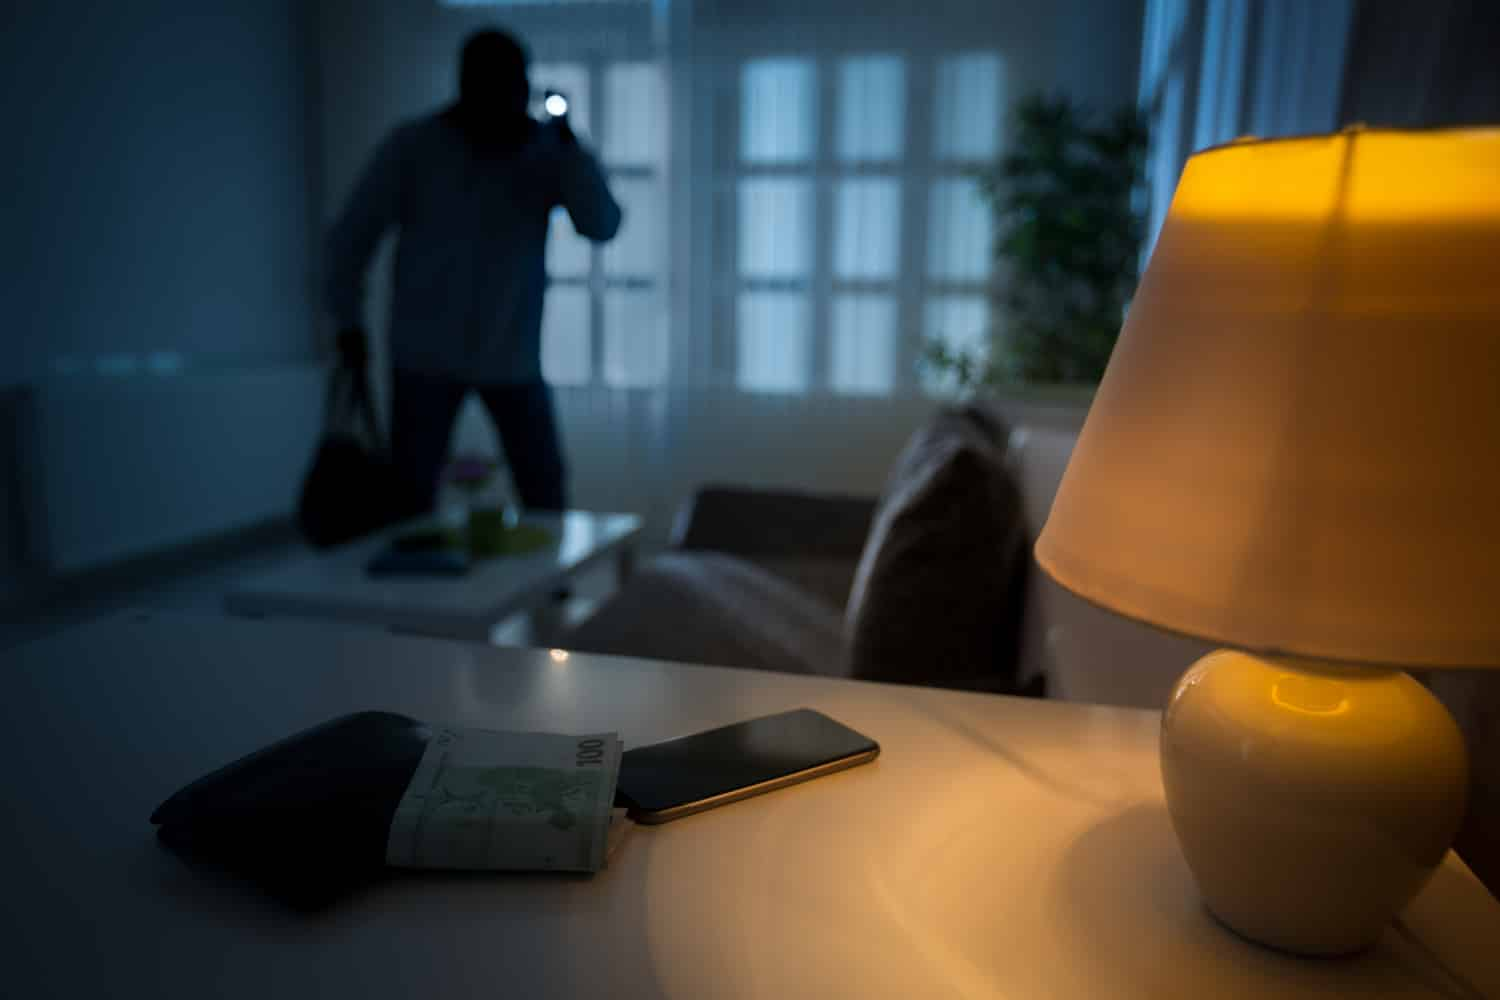 A man in a dark home committing burglary